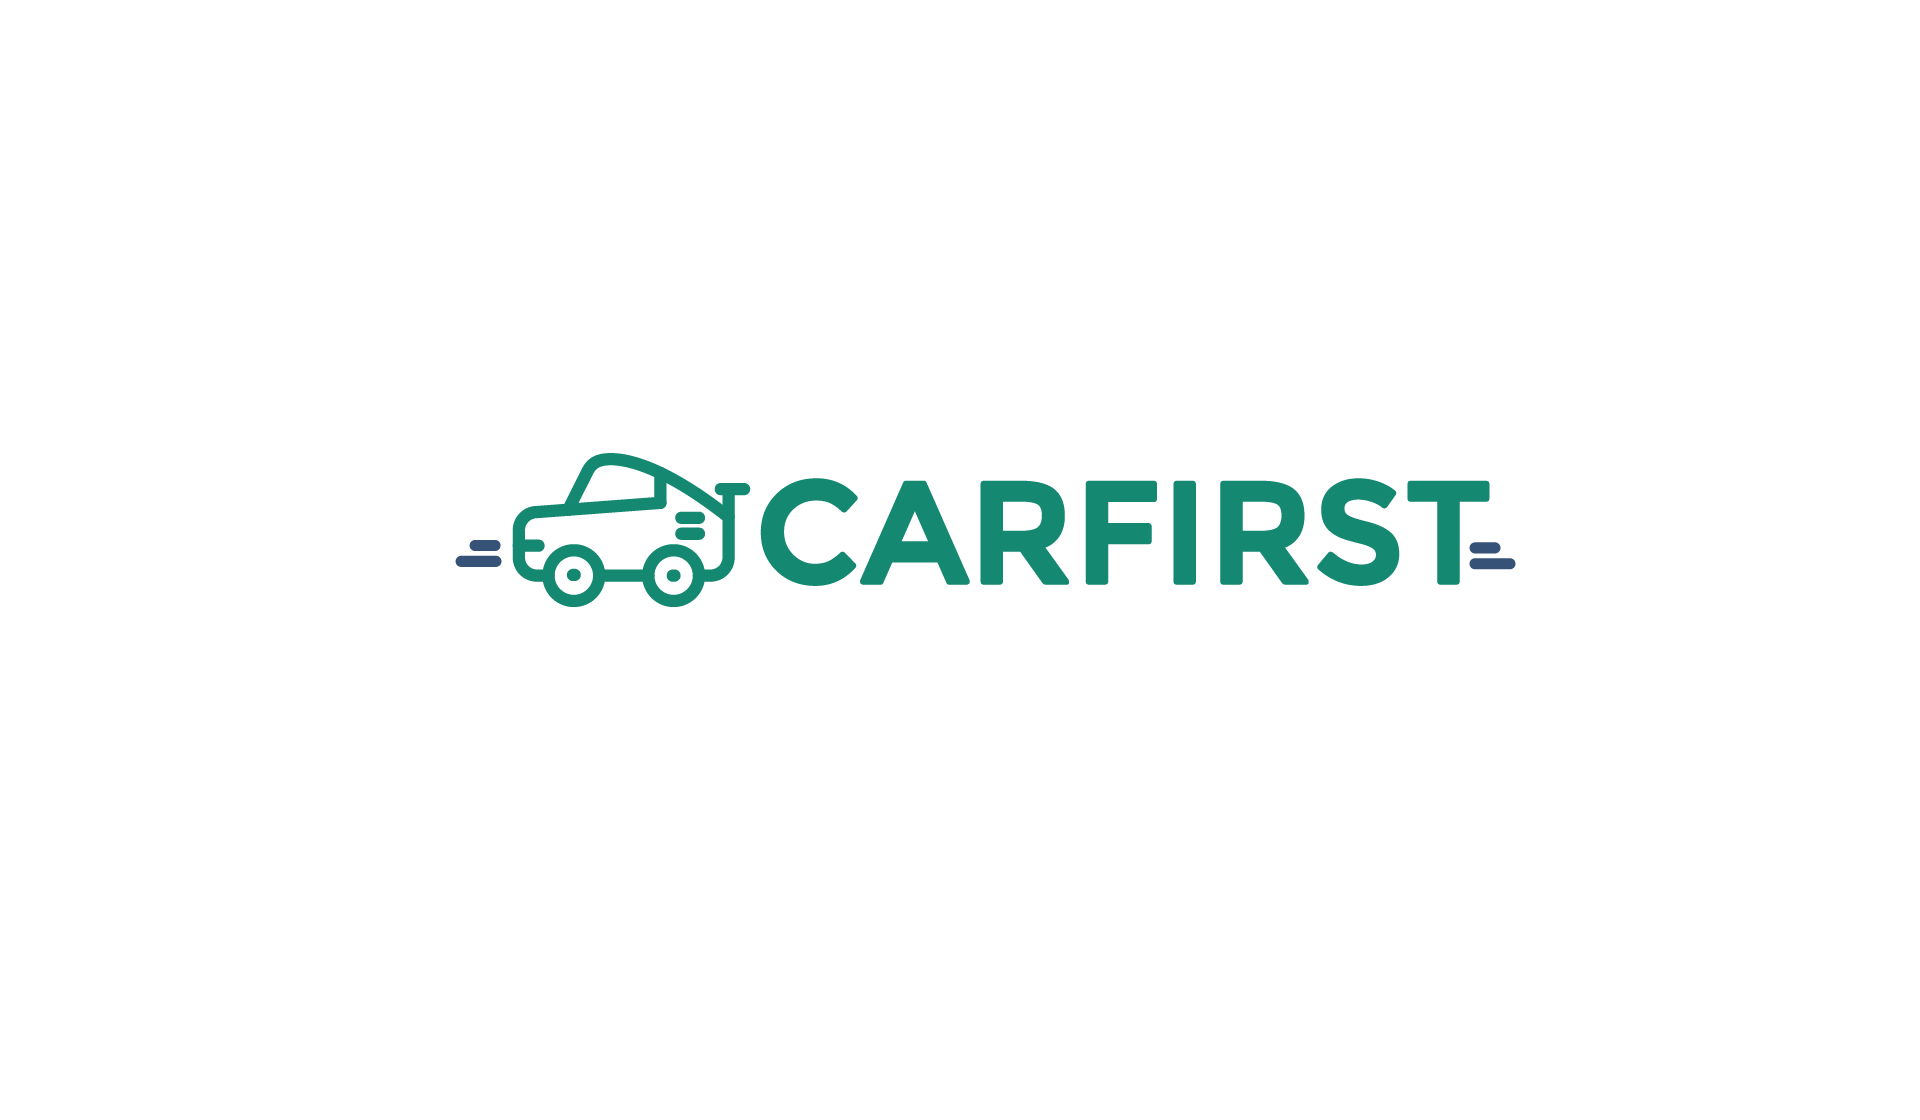 CarFirst Launches Their Flagship Inspection Center Sell Your Car within an hour with CarFirst